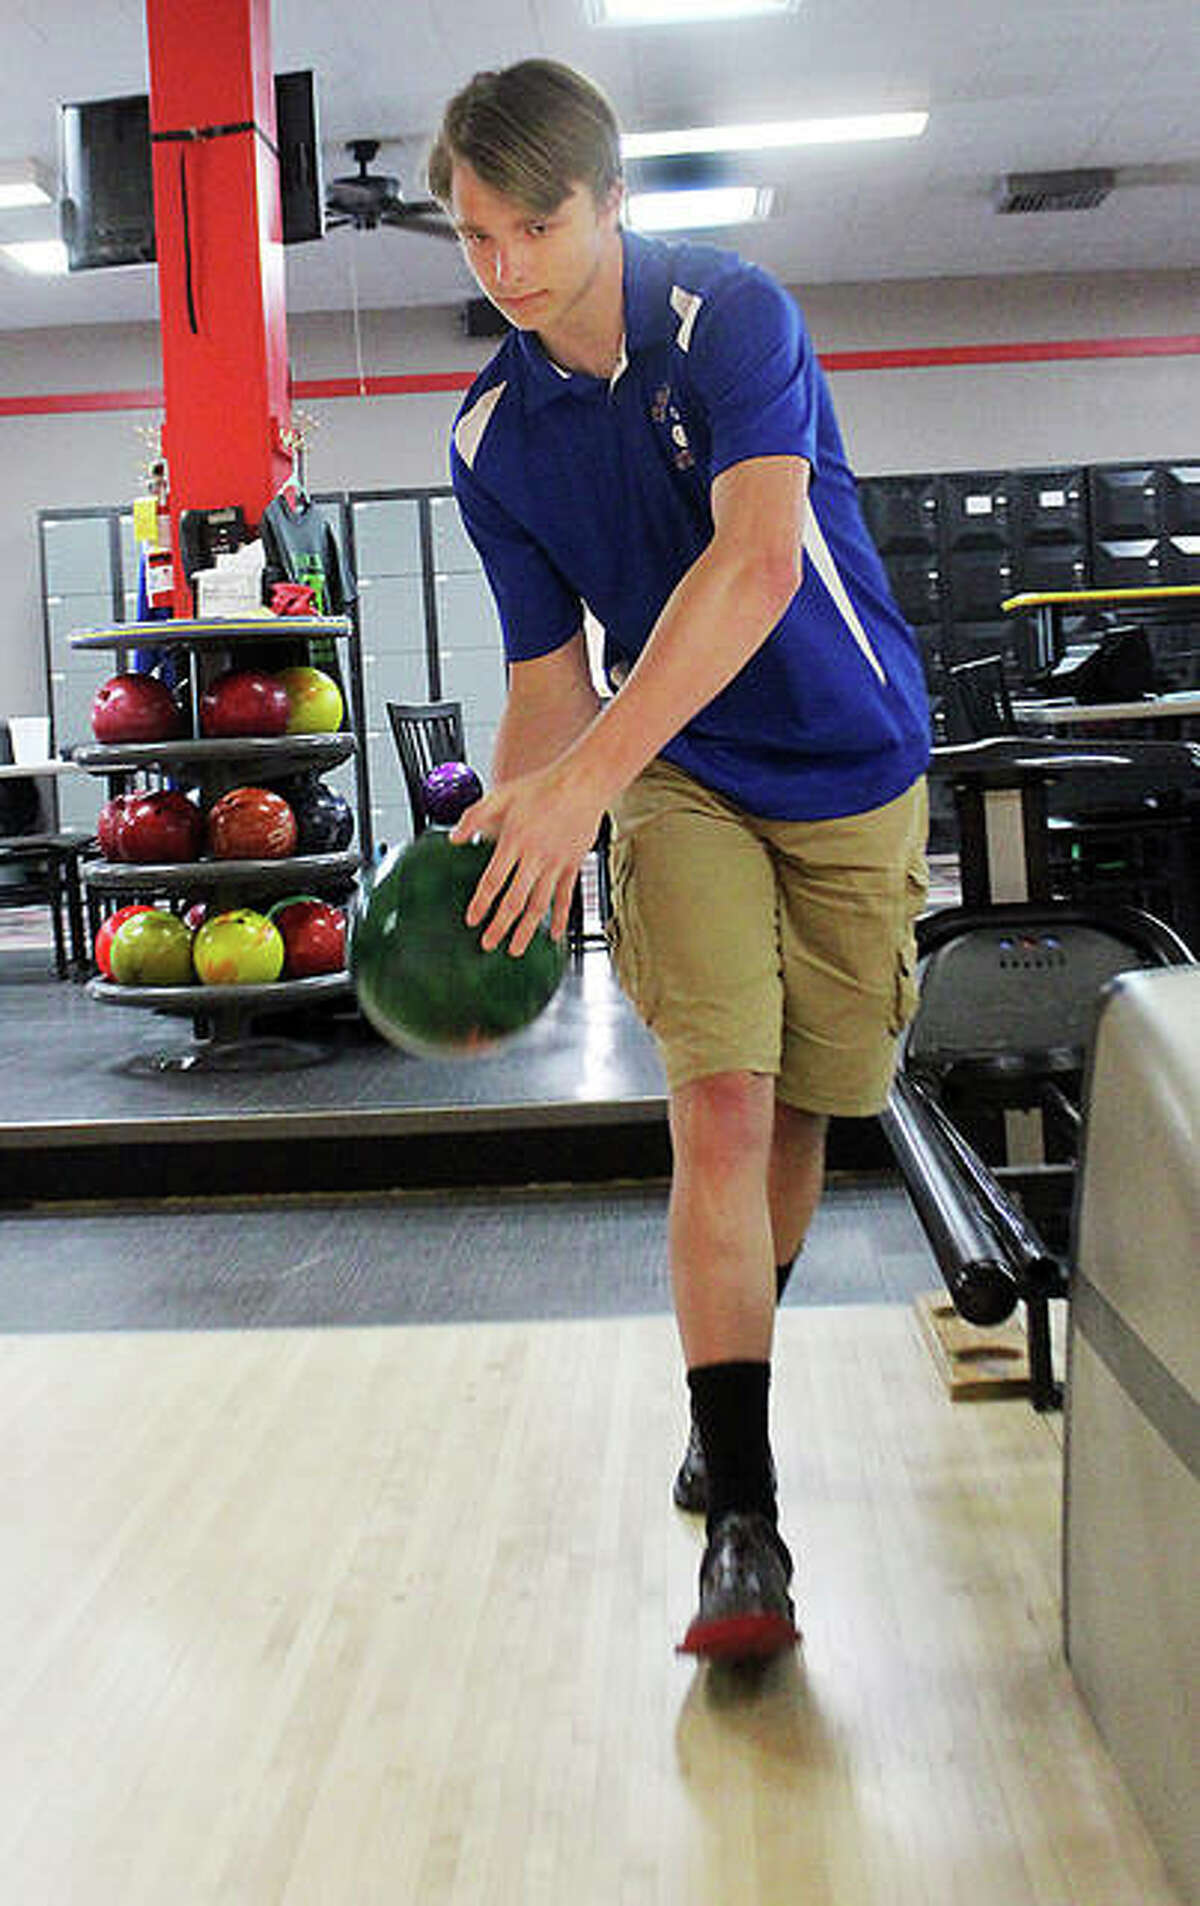 Logan Wonders of Roxana overcame a rough start to the 2021 season and finished strong with high games of 278 and 277 and high series of 727 and 744 in his last two matches.